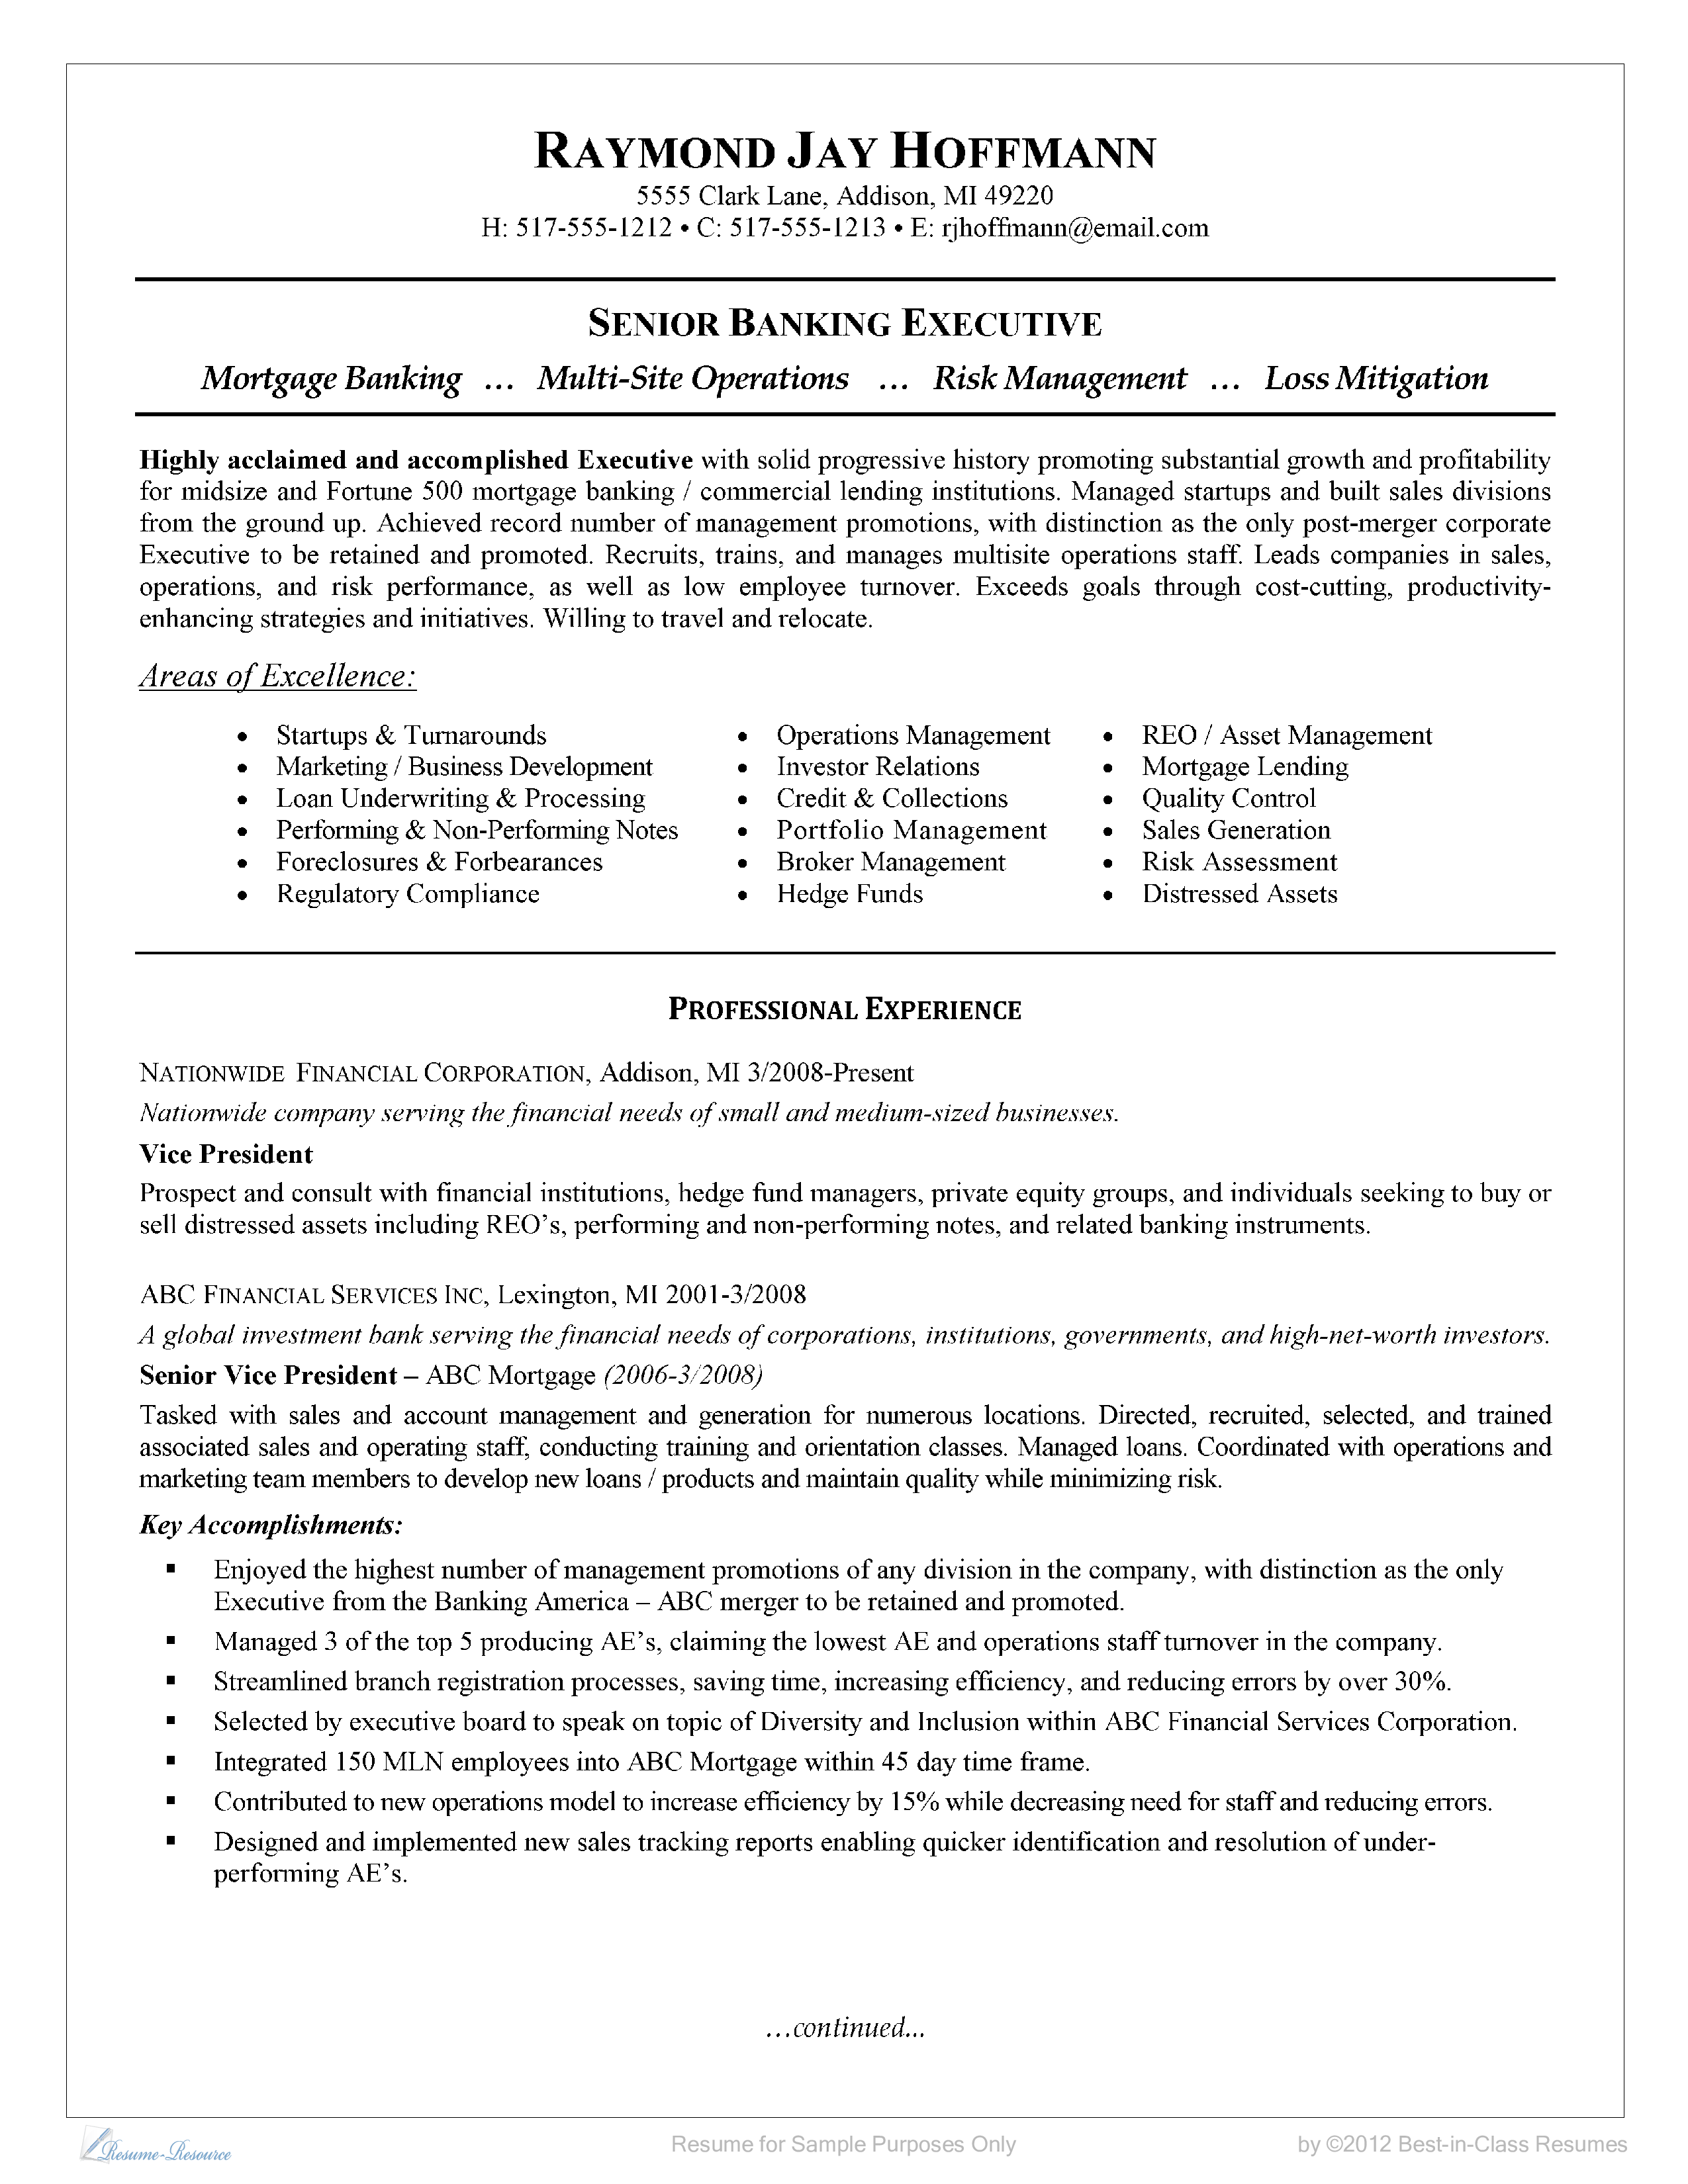 Bank Sales Executive Resume Senior Banking Executive Resume How To Grab Your Futures